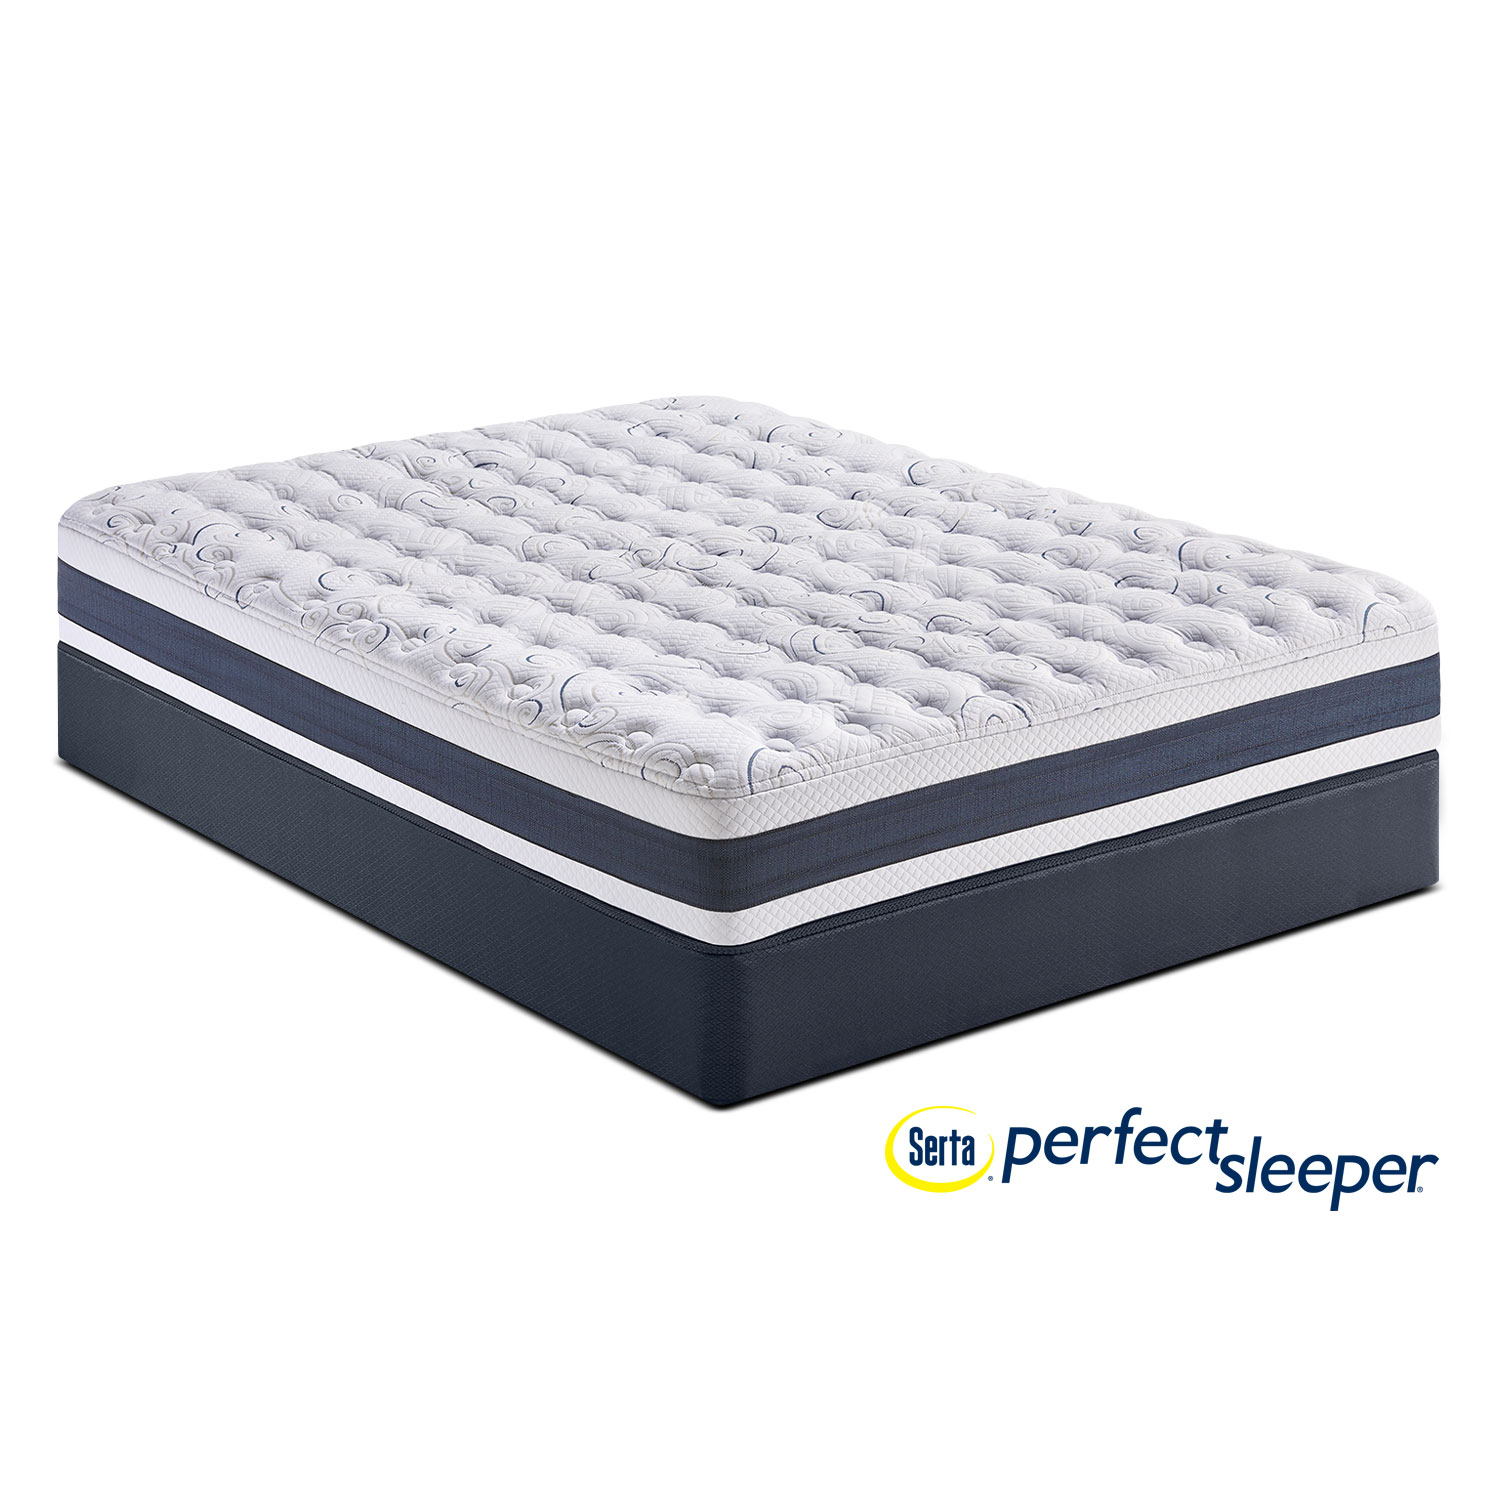 Mattresses and Bedding - Strathfield Firm Queen Mattress and Foundation Set